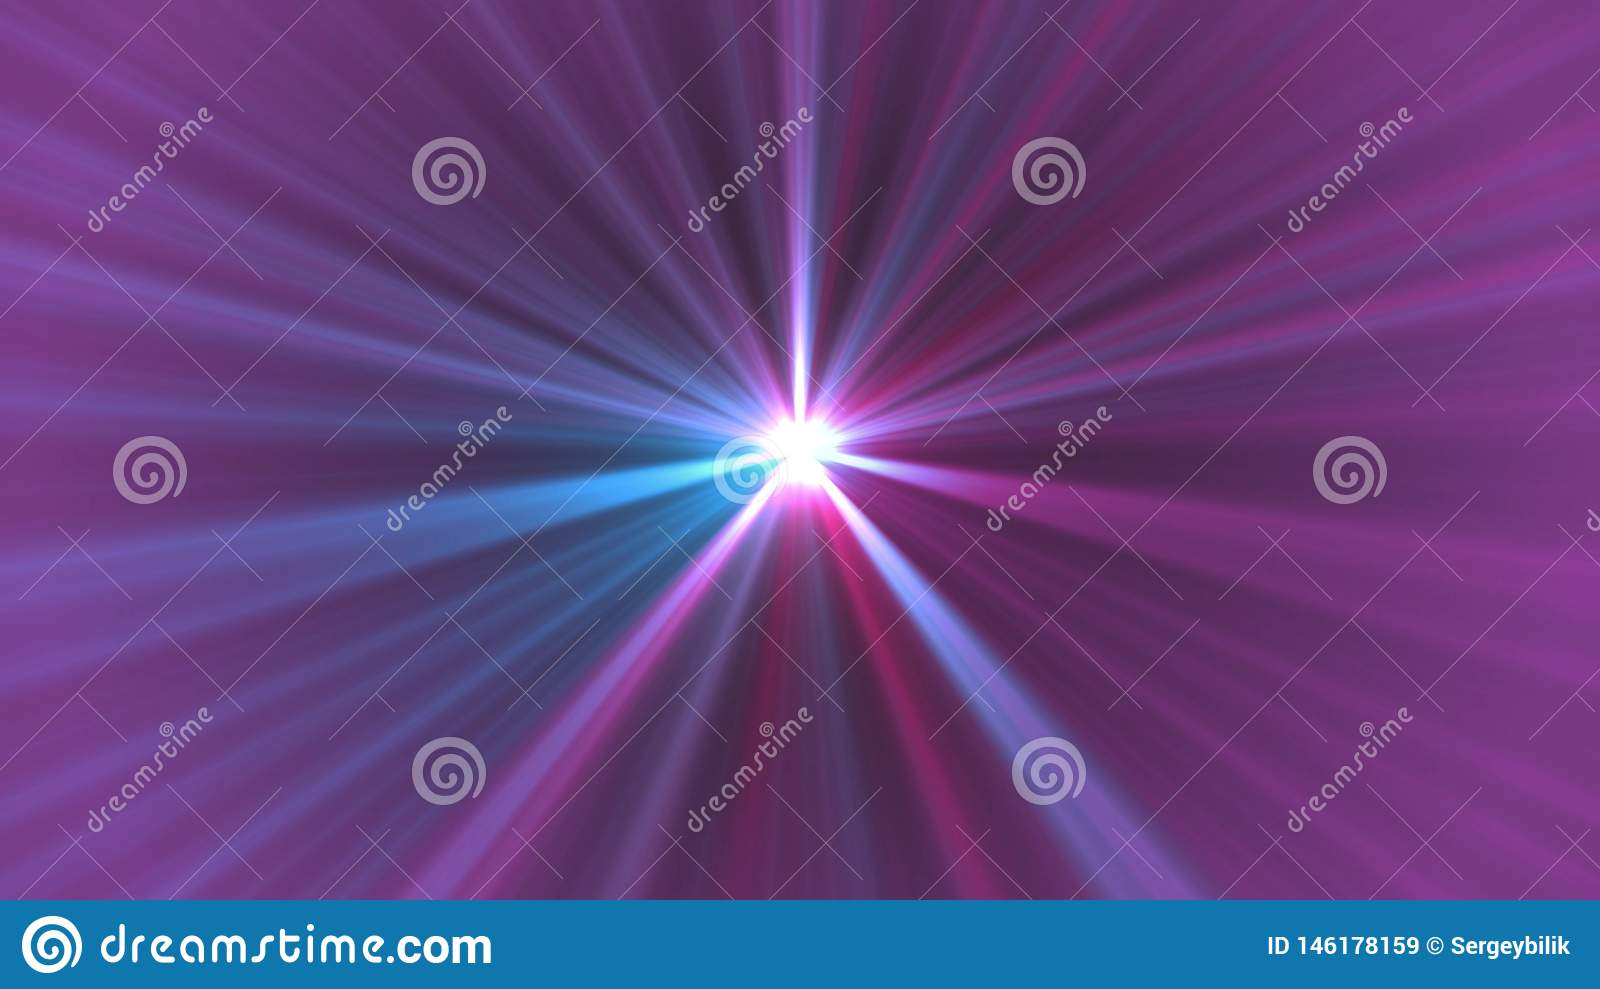 Central star shine optical lens flares shiny bokeh illustration art background new natural lighting lamp rays effect